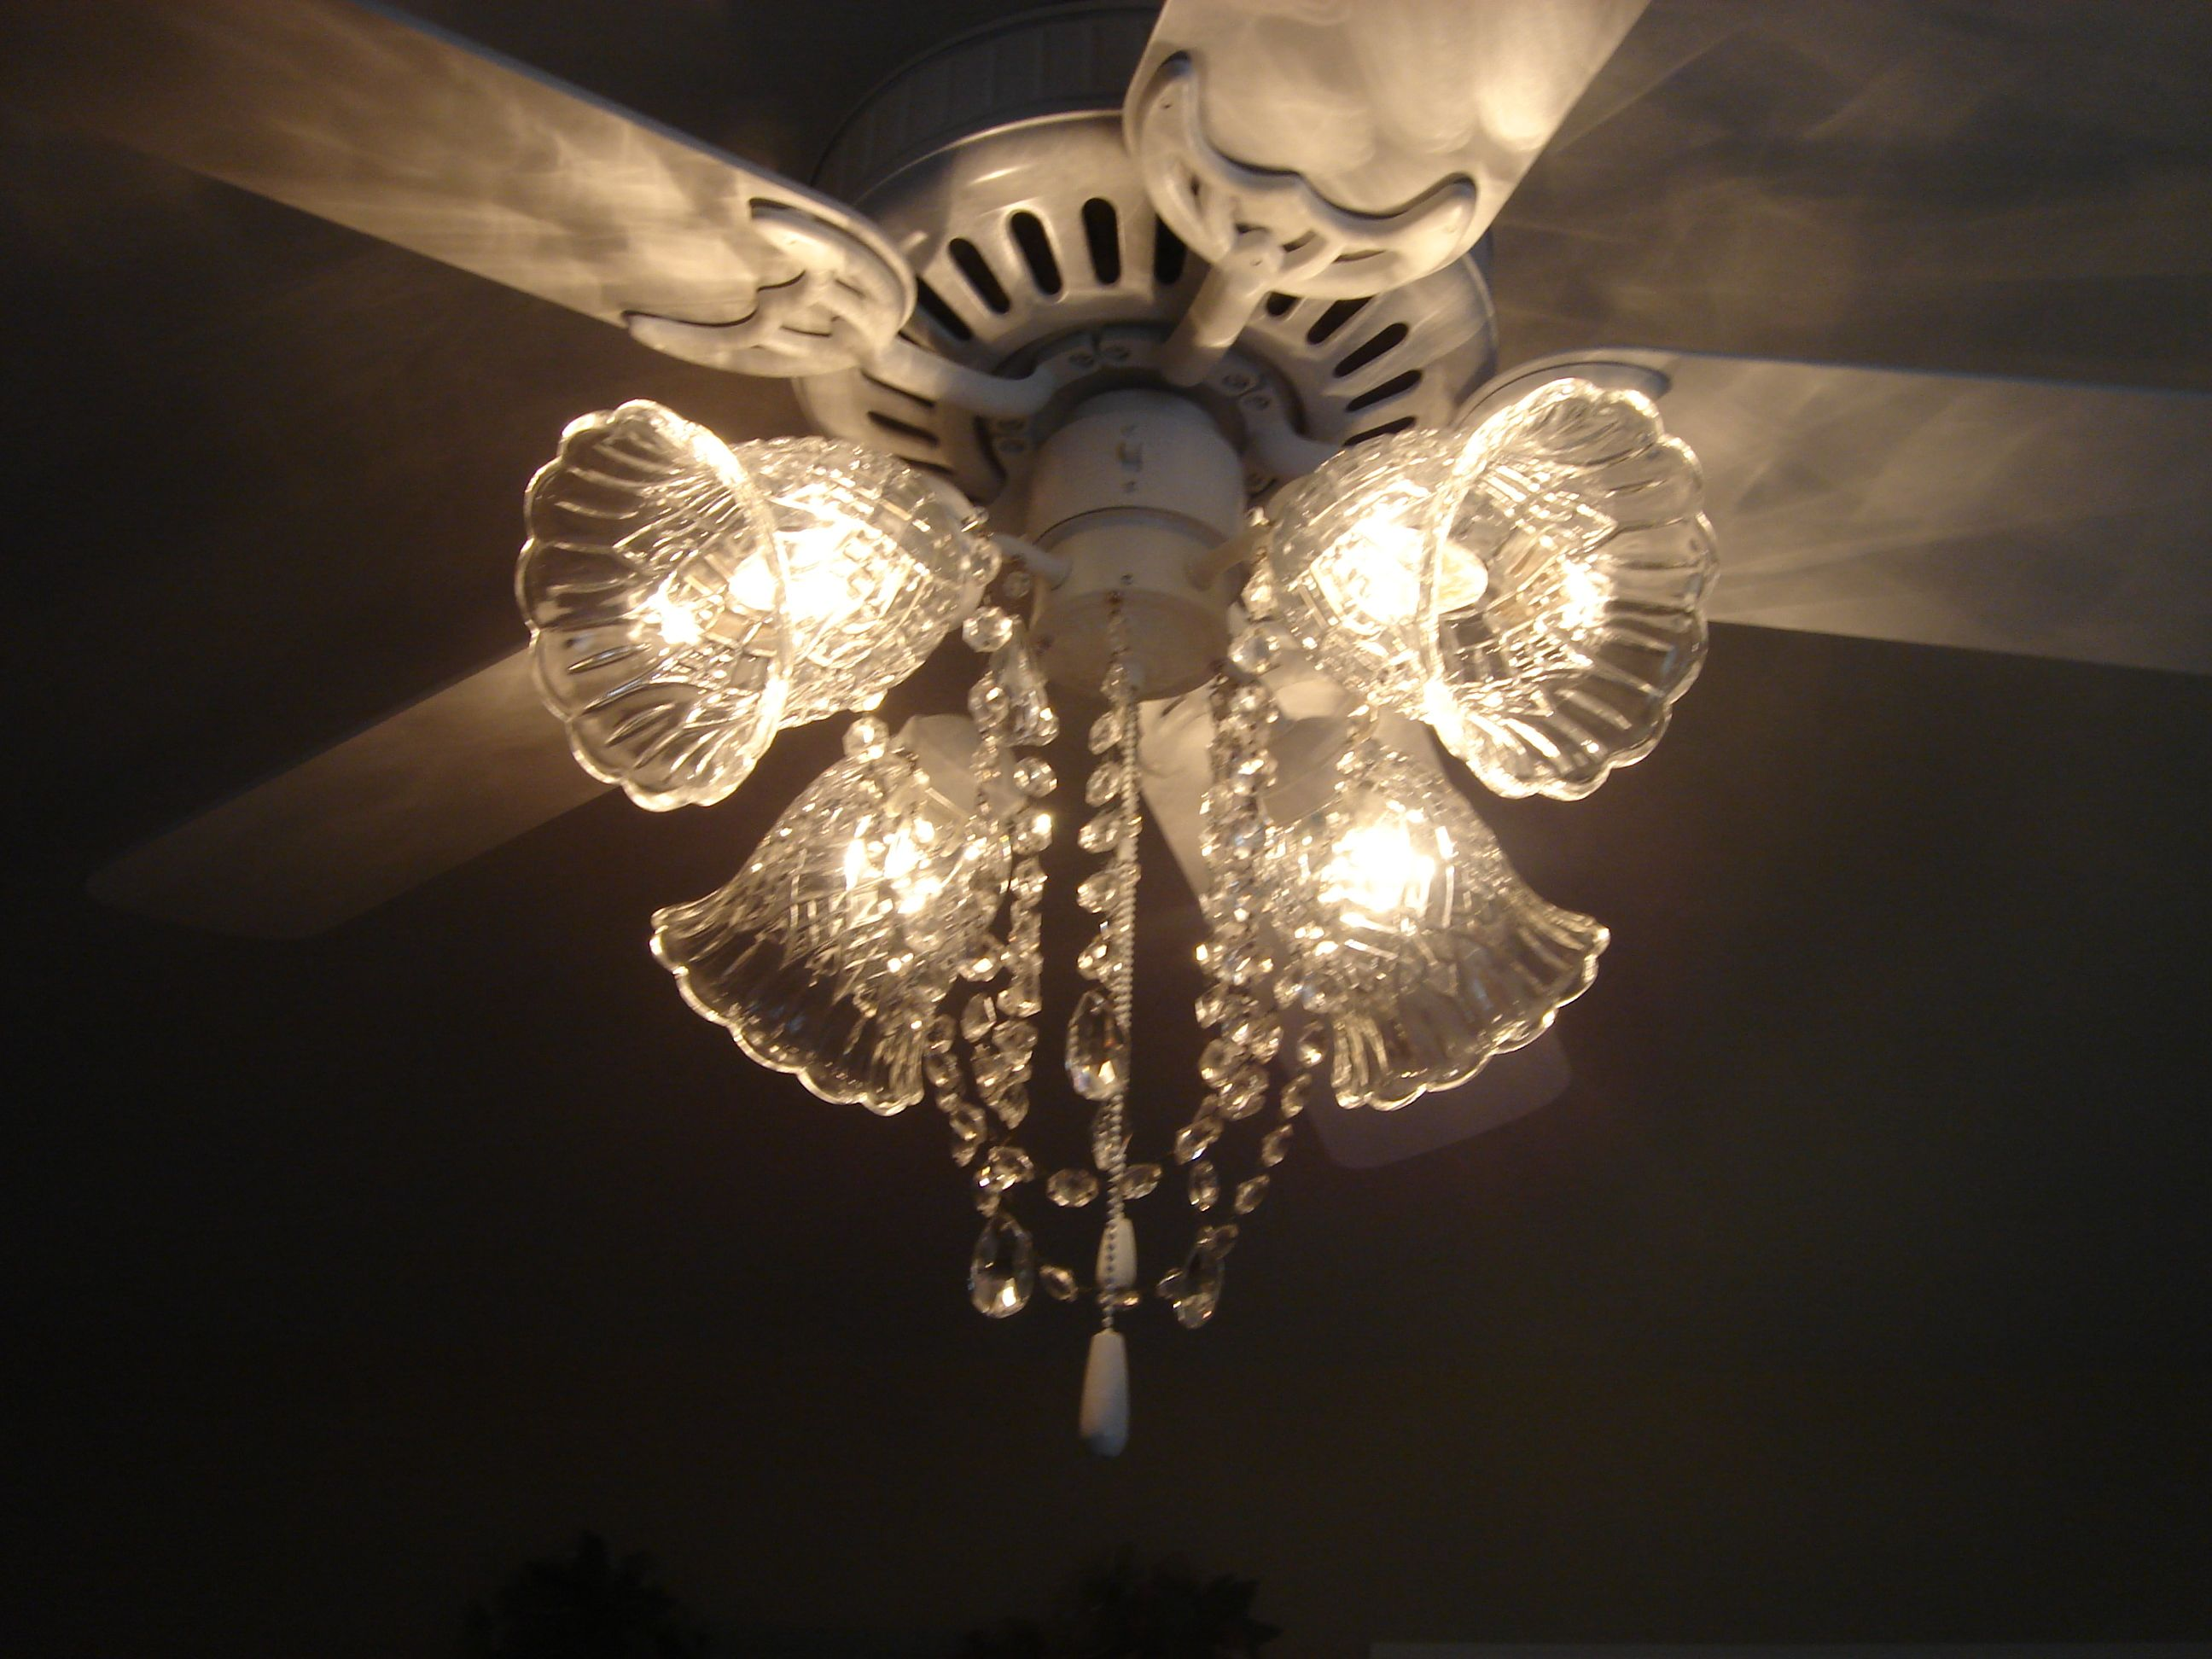 Ceiling Fan After Picture Painted White And Made Into A Fan - Chandelier crystals with magnets